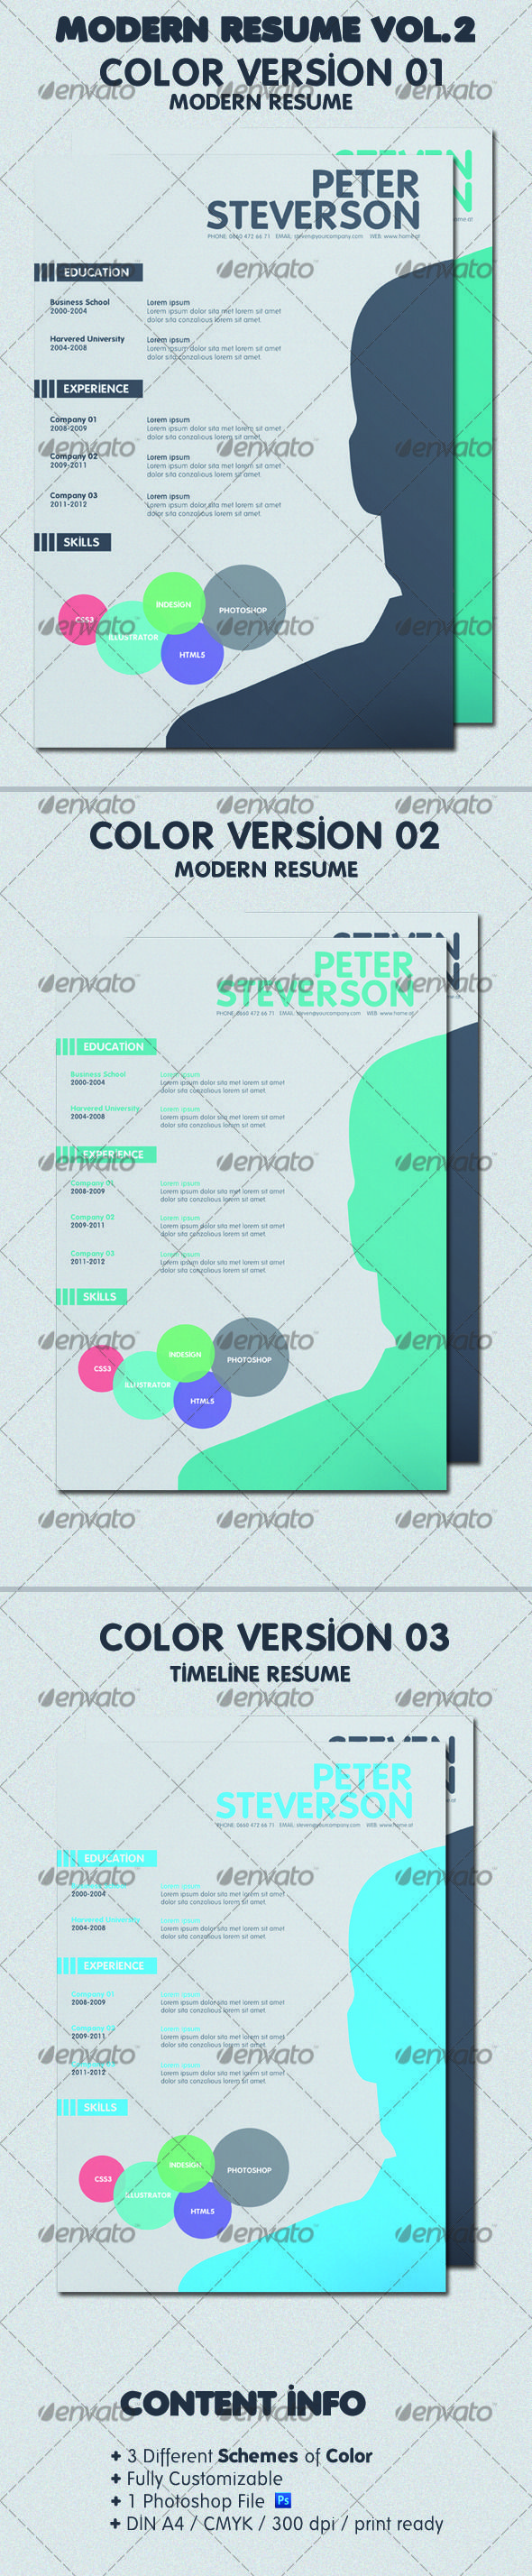 Fine 1 Year Experience Resume Format For Dot Net Tall 1.5 Inch Hexagon Template Shaped 100 Template 1099 Excel Template Youthful 1099 Misc Form Template Blue12 Inch Ruler Template Print Templates: A Collection Of Design Ideas To Try | Print ..